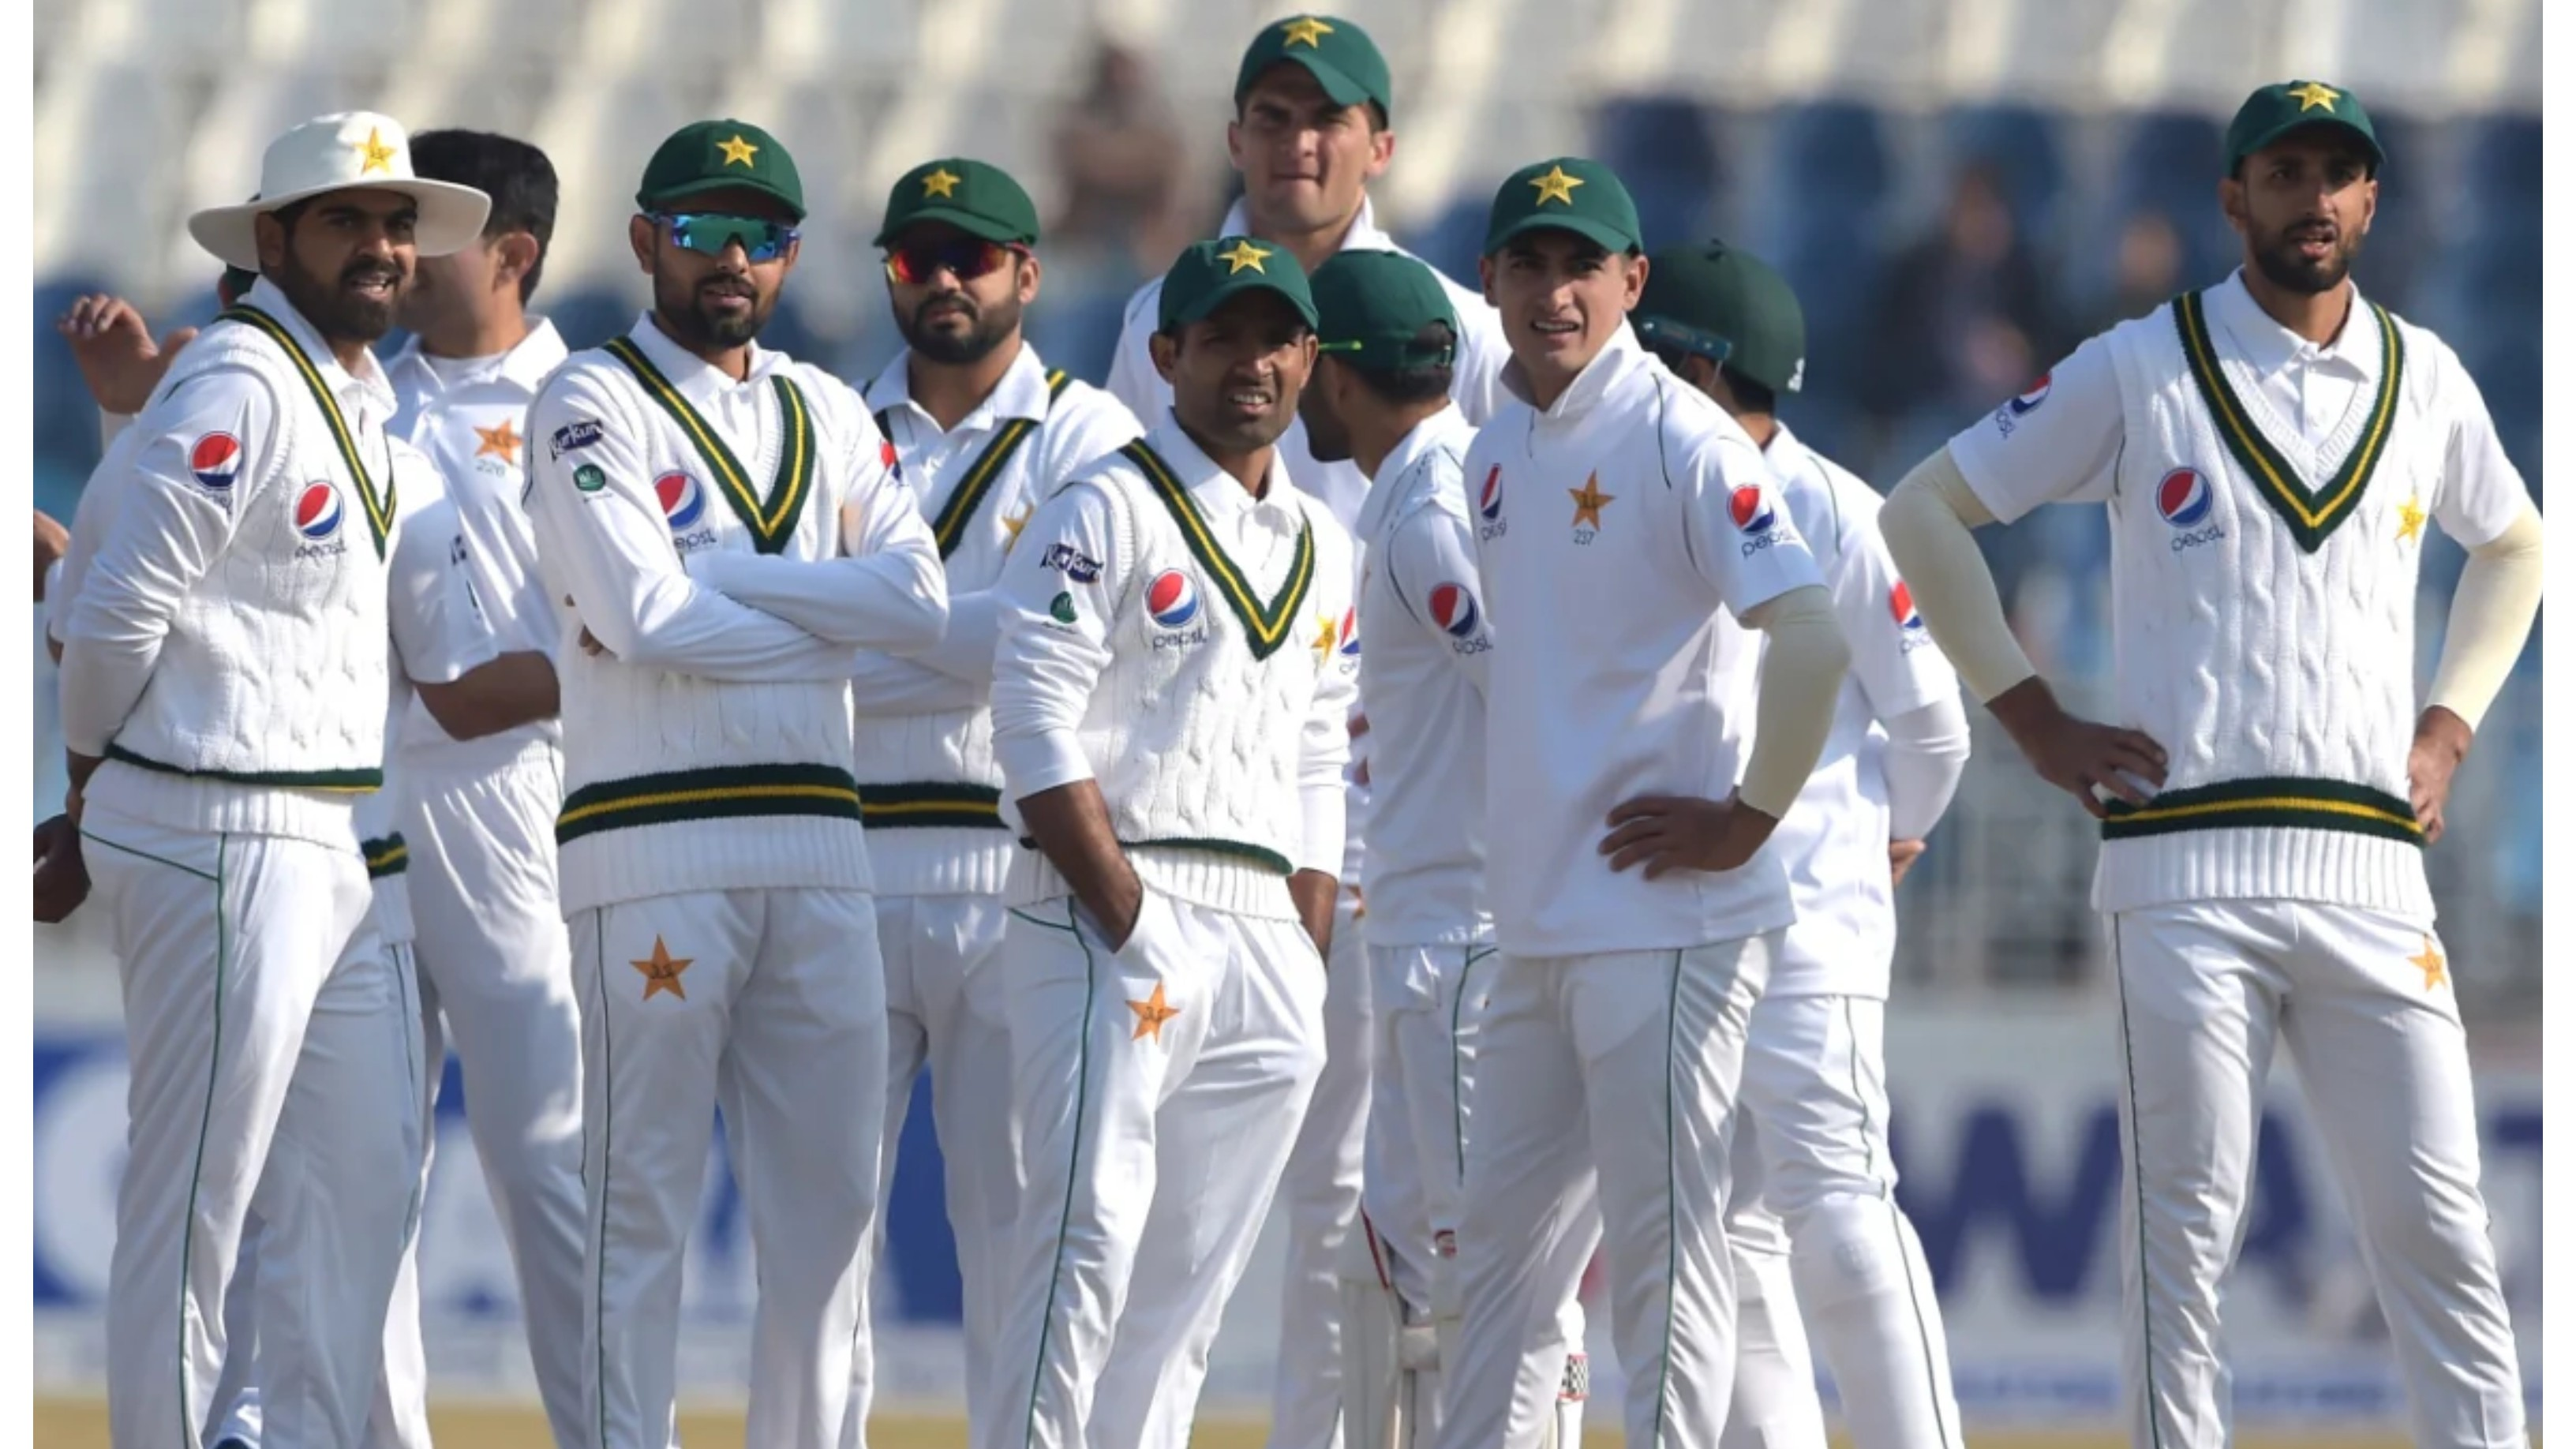 ENG v PAK 2020: PCB announces first group of travellers for England tour after conducting COVID-19 retests